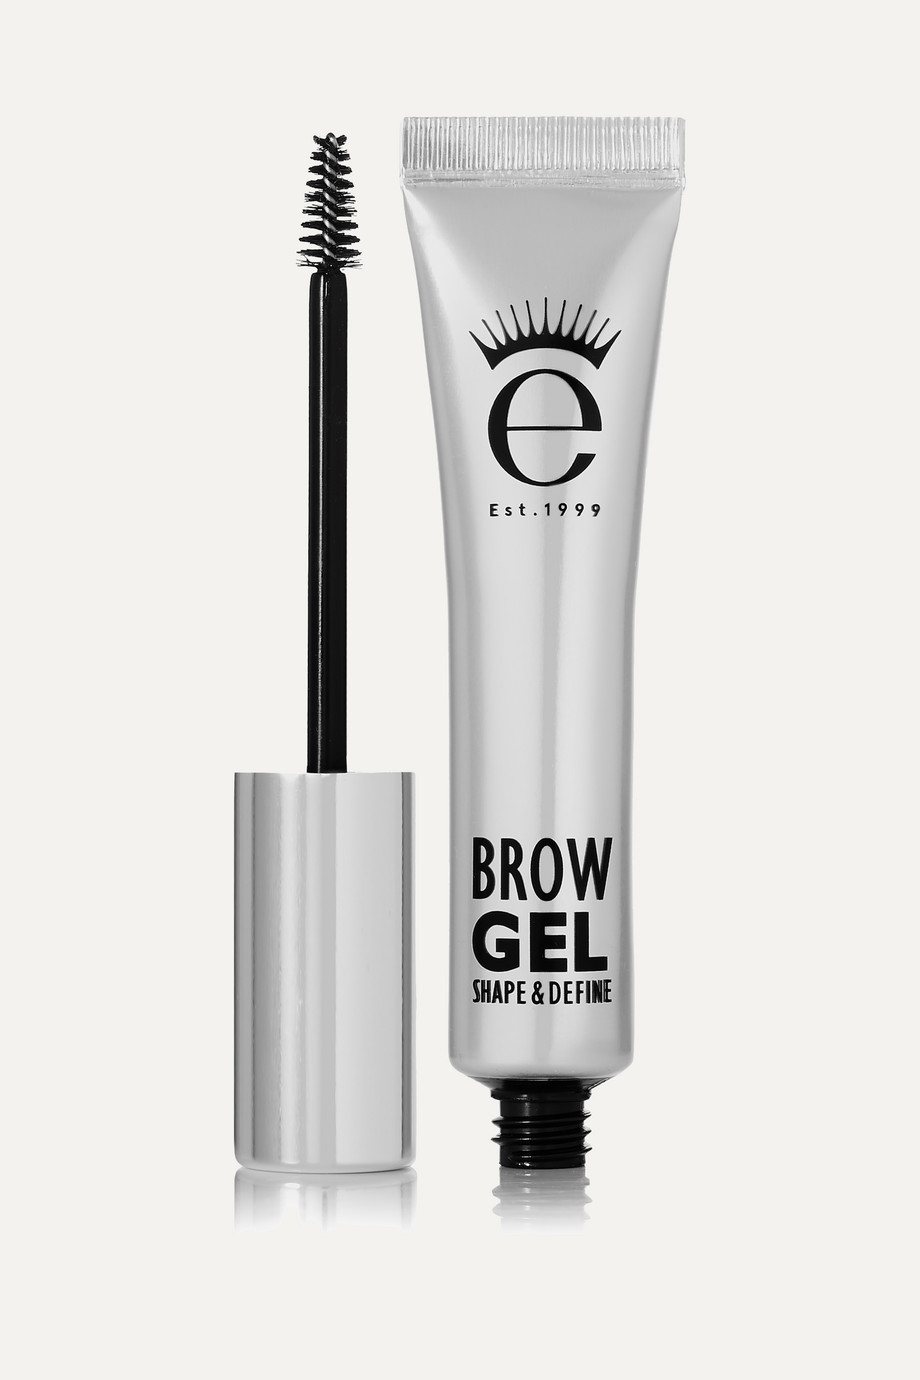 Tinted Brow Gel, by Eyeko